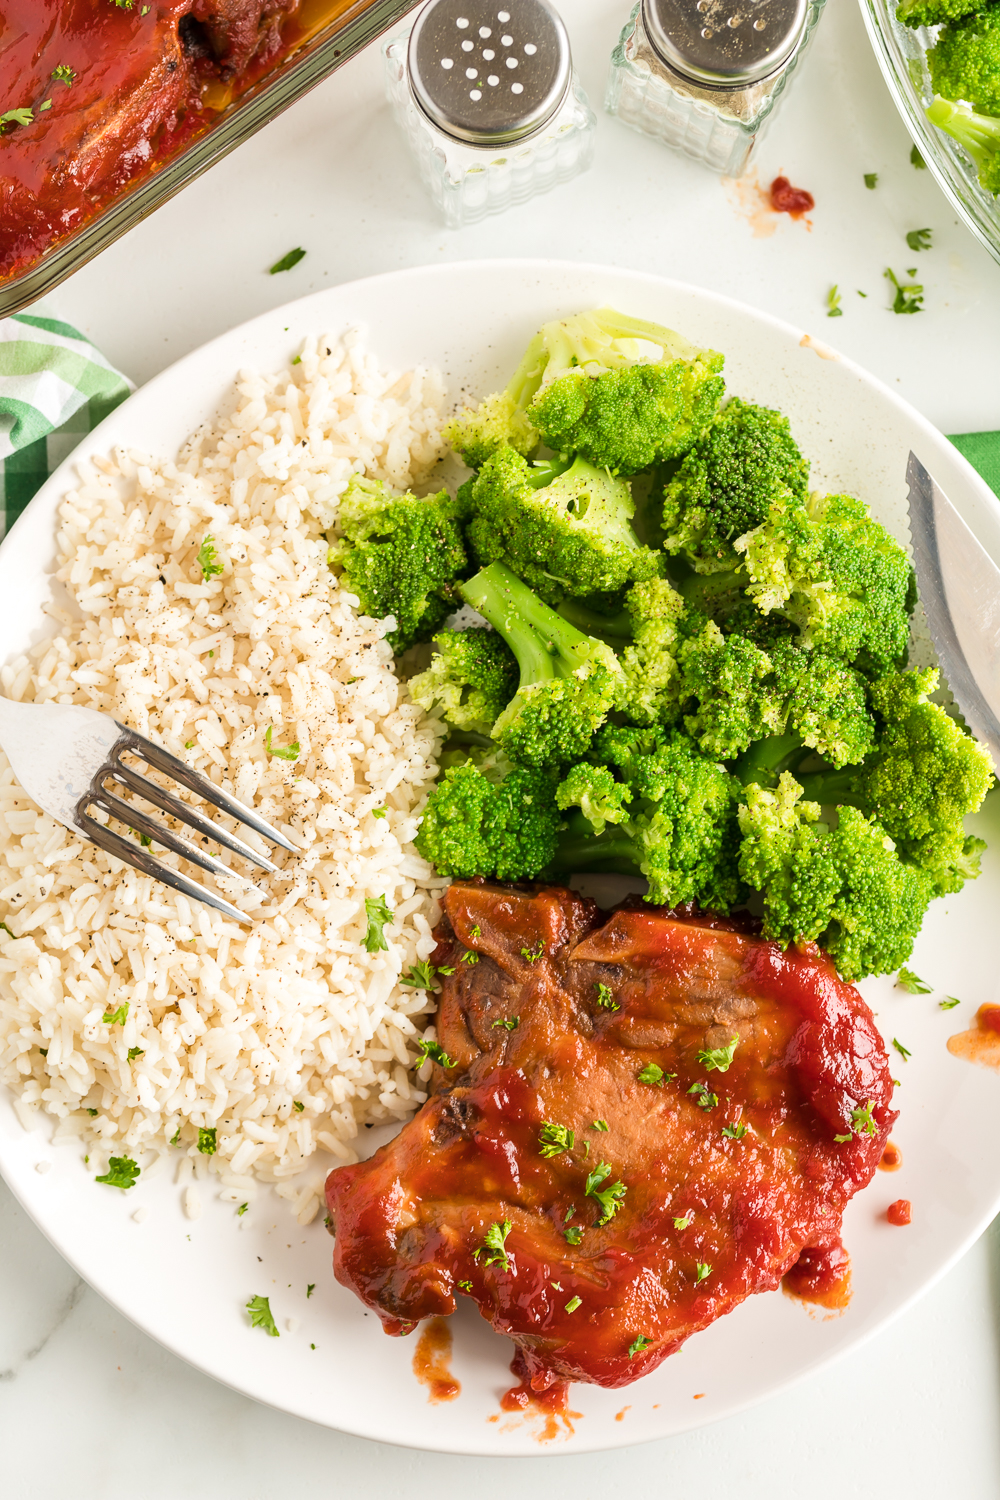 Oven Glazed Pork Chops: a delicious oven baked pork chop recipe that is marinated in a flavorful brown sugar marinade and then baked with a brown sugar and tomato based sauce. This recipe makes for a great weeknight meal!